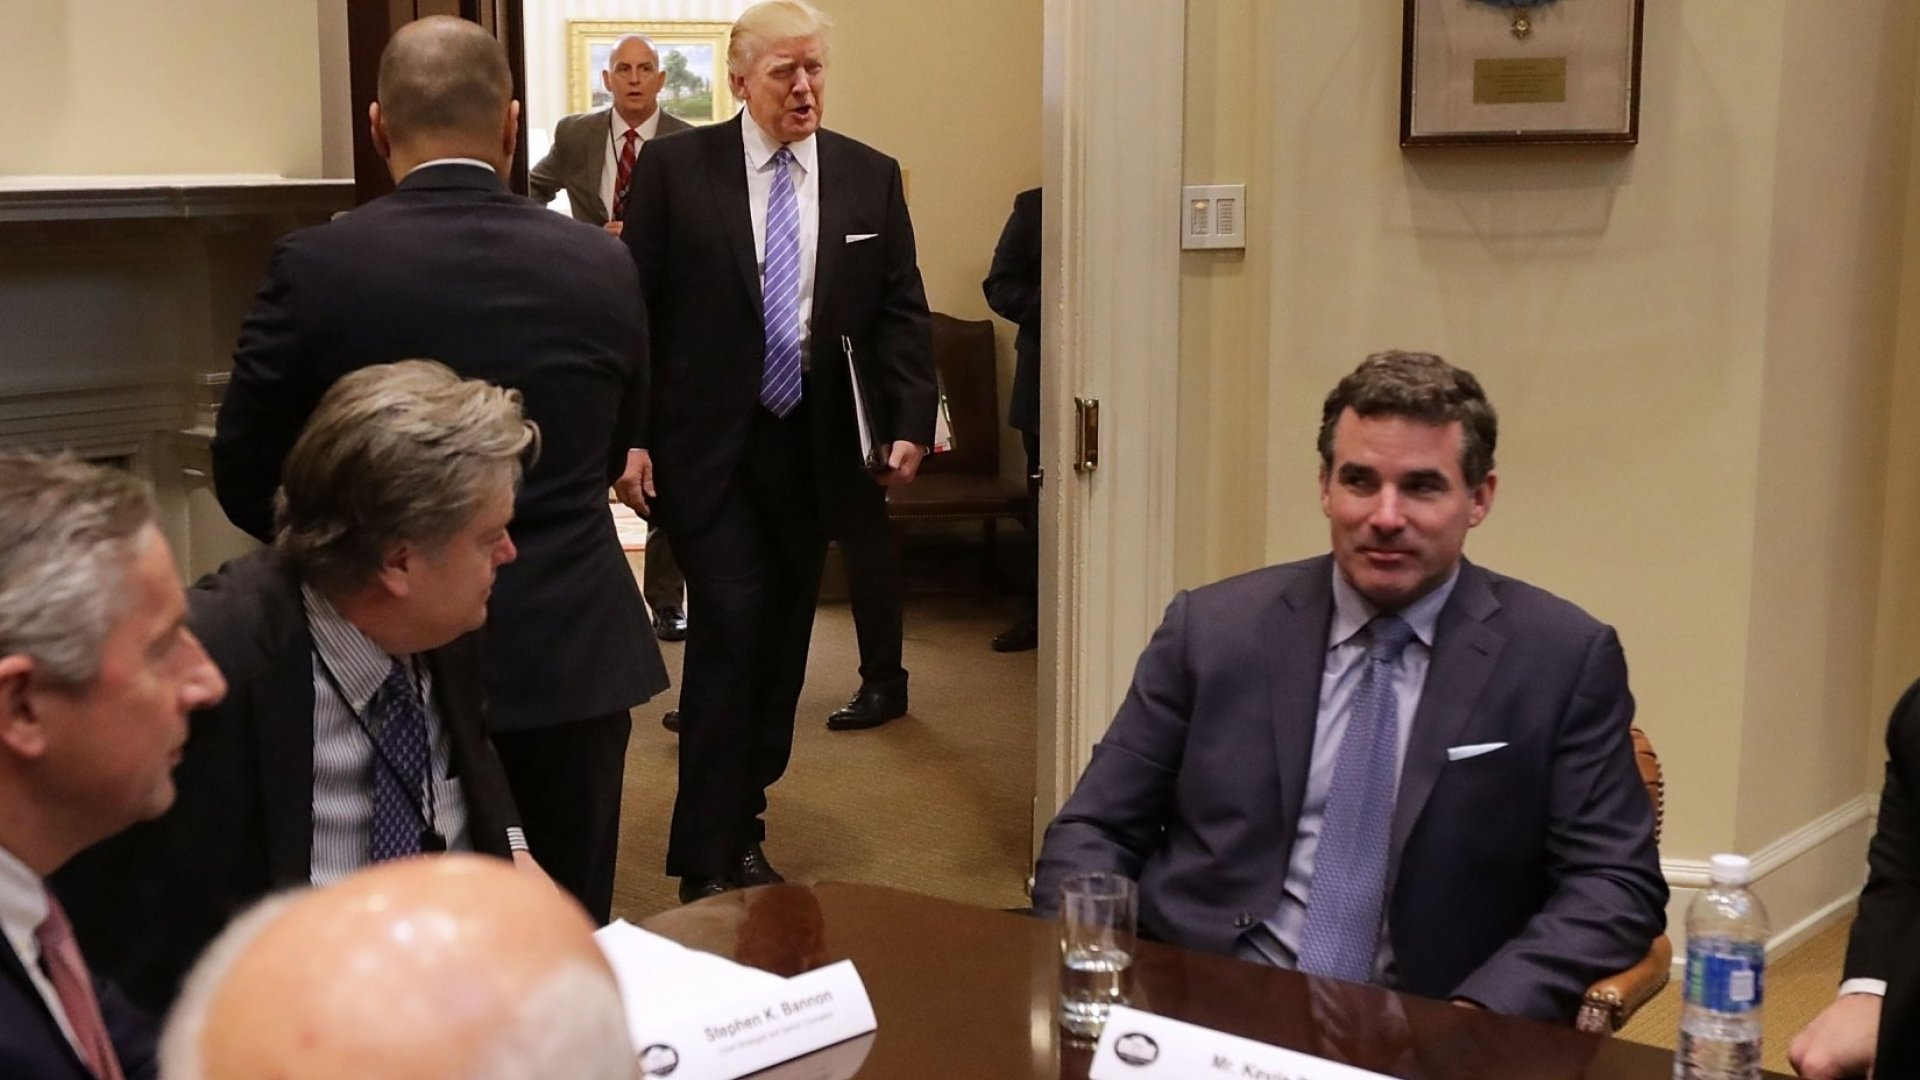 Kevin Plank, CEO of Under Armour, is among a handful of business leaders who met with President Trump during his first week in the White House. Now, Plank's company is taking a hit.